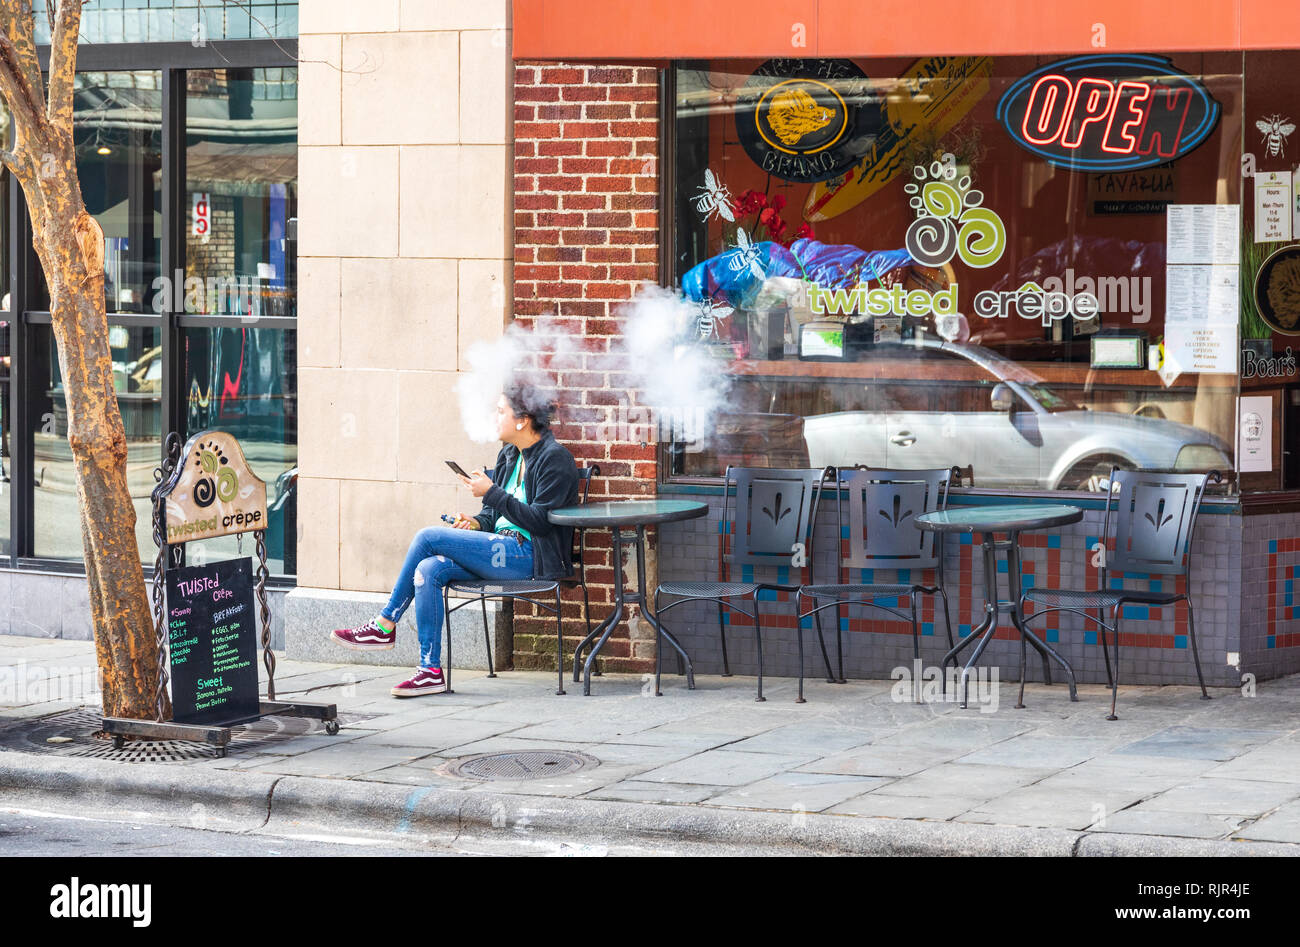 ASHEVILLE, NC, USA-2/3/19: Young woman sitting in front of restaurant, using a vaping device, creating smoke. - Stock Image